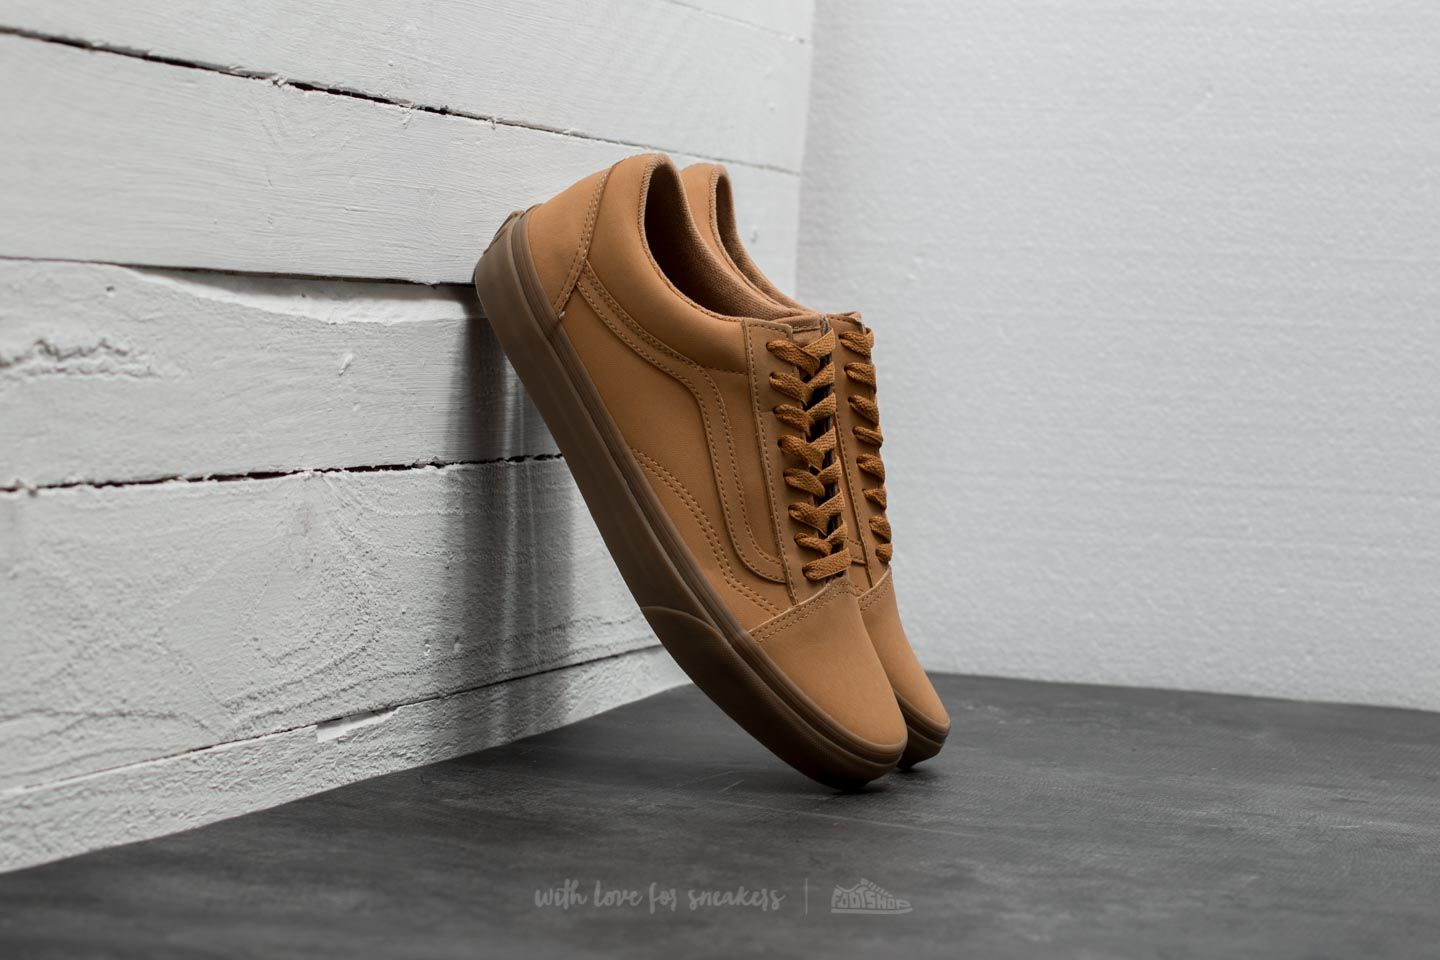 ad18915de61 Vans Old Skool (Vansbuck) Light Gum  Mono